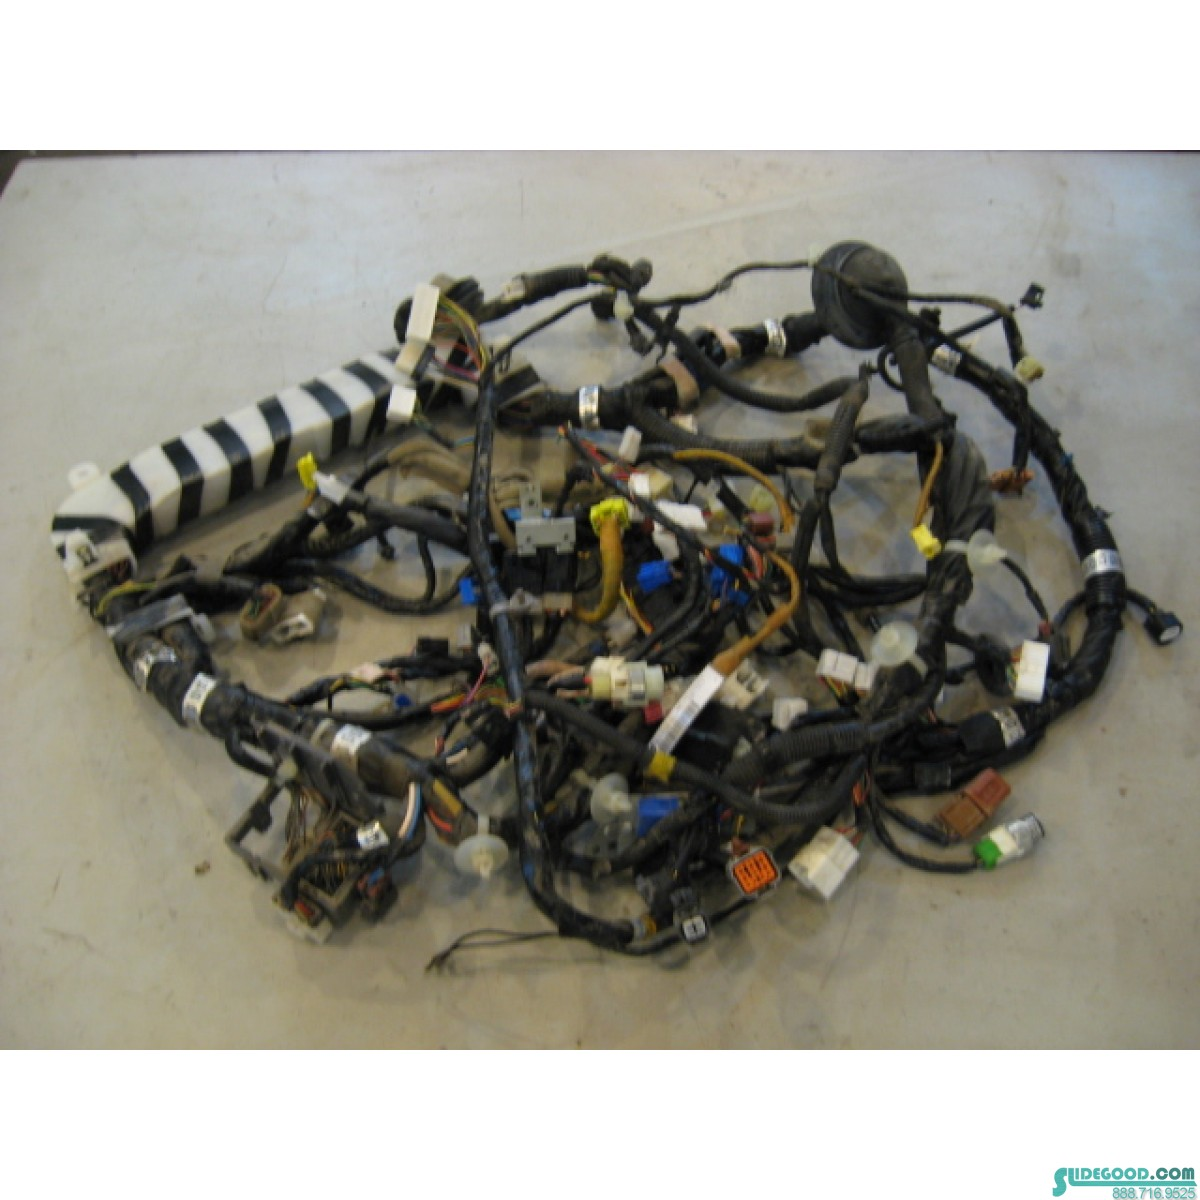 hight resolution of 02 subaru impreza wrx dash wiring harness 81402fe000 r7524 2002 subaru wrx headlight wiring harness 02 subaru wrx wiring harness